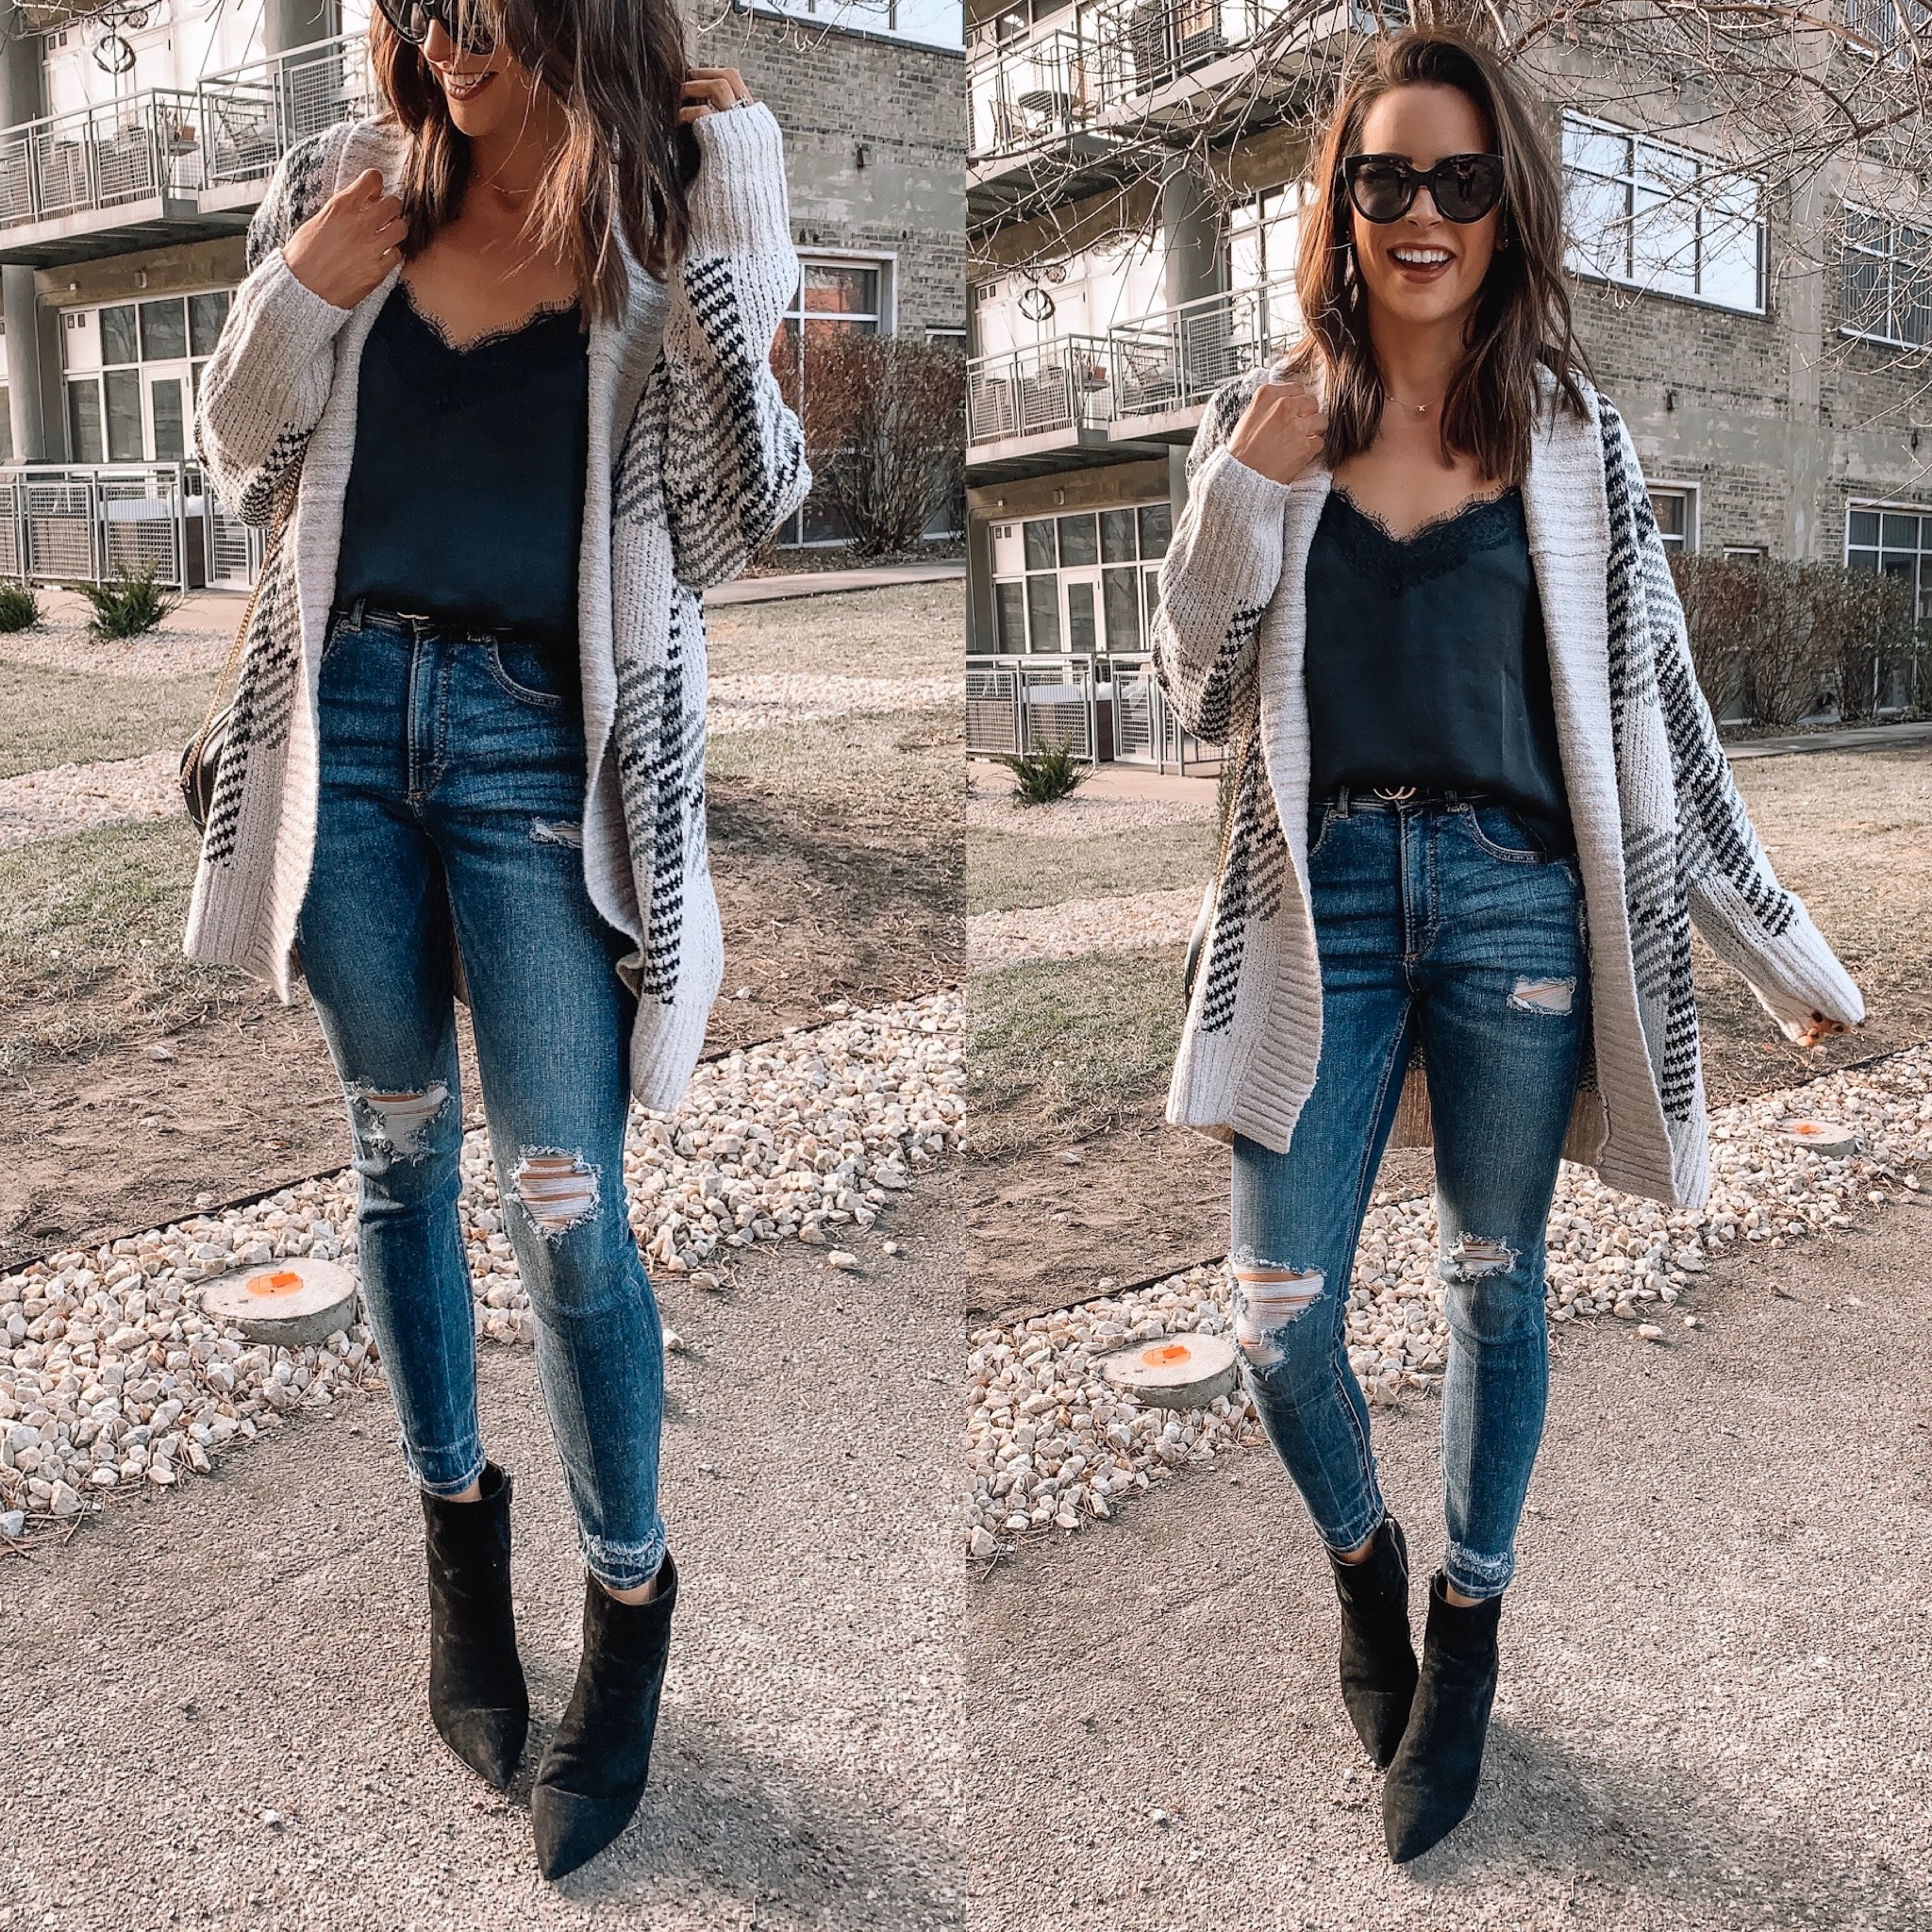 express Black Friday cyber Monday sale 2019. plaid cardigan coatigan, affordable fashion, winter fashion, holiday outfit, Minneapolis blogger